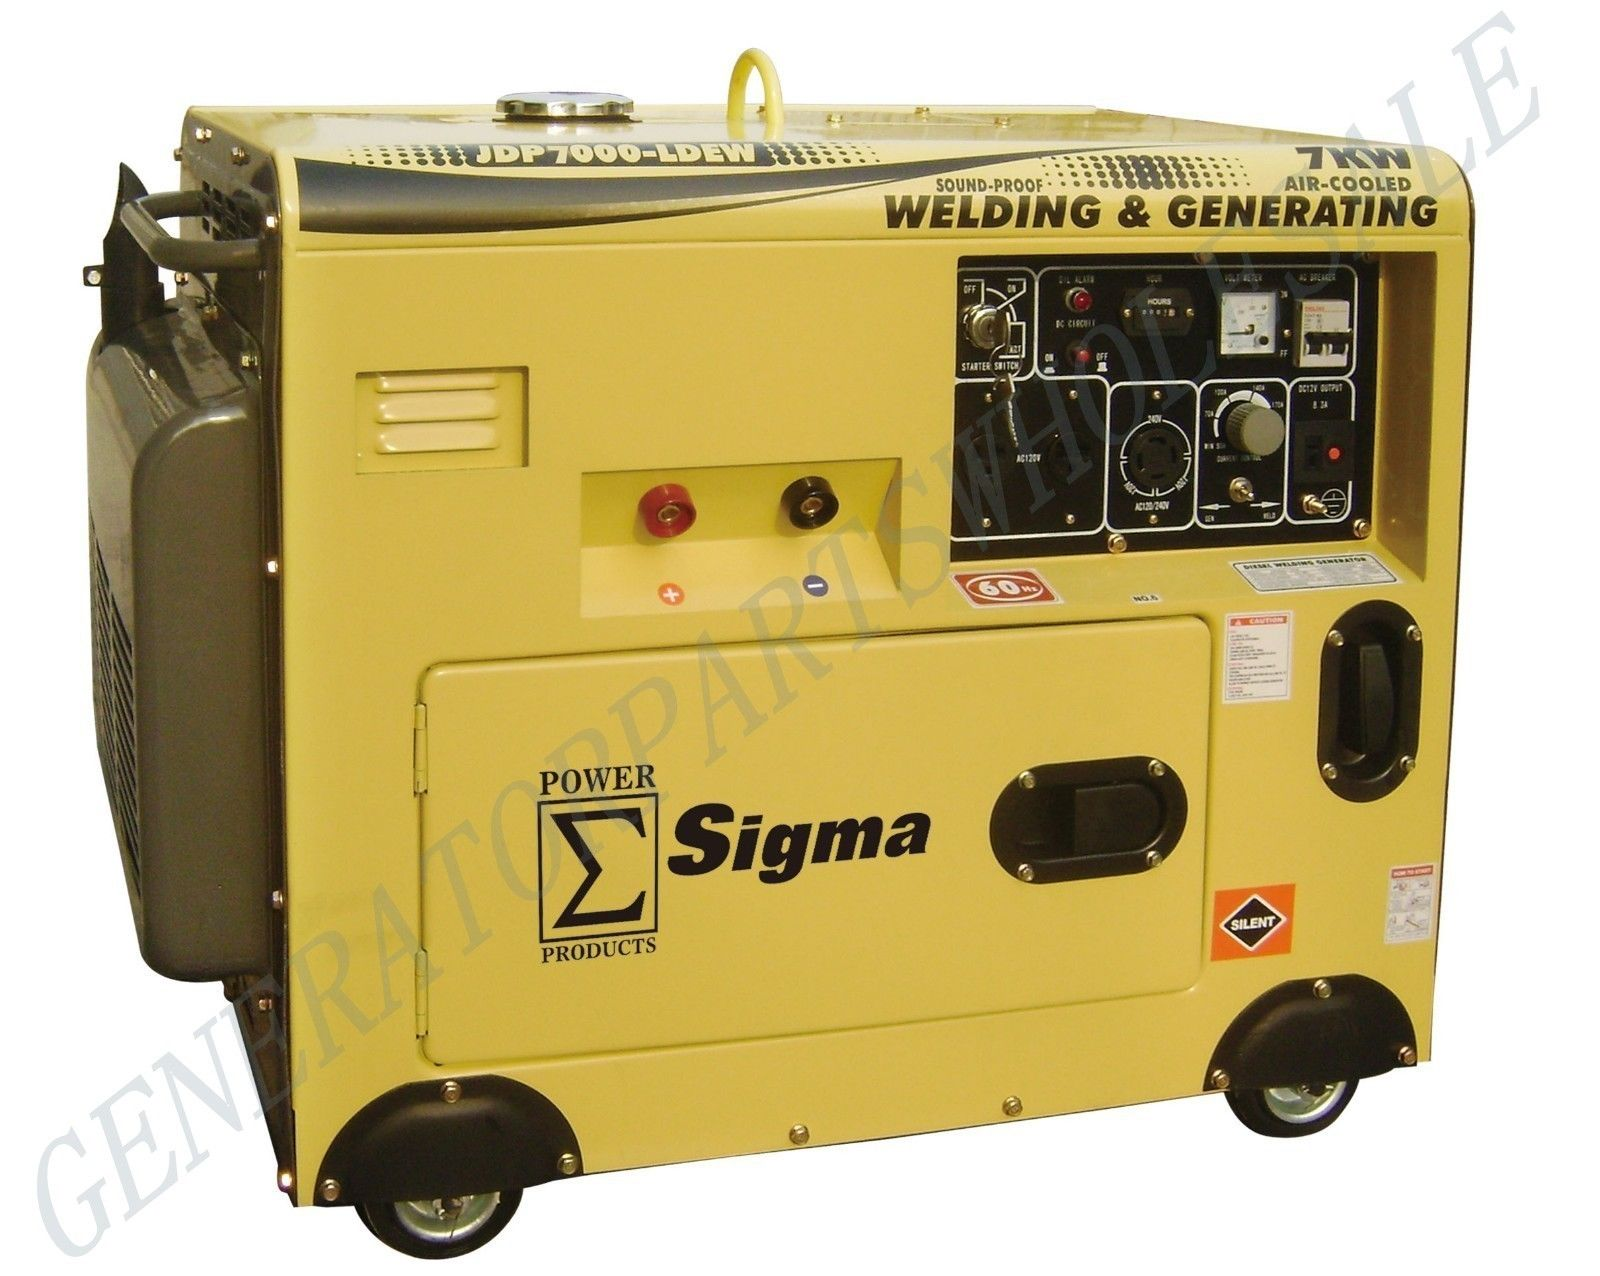 7000 Watt Silent Diesel Welding Generator Electric Start / JDP7000-LDEW_2